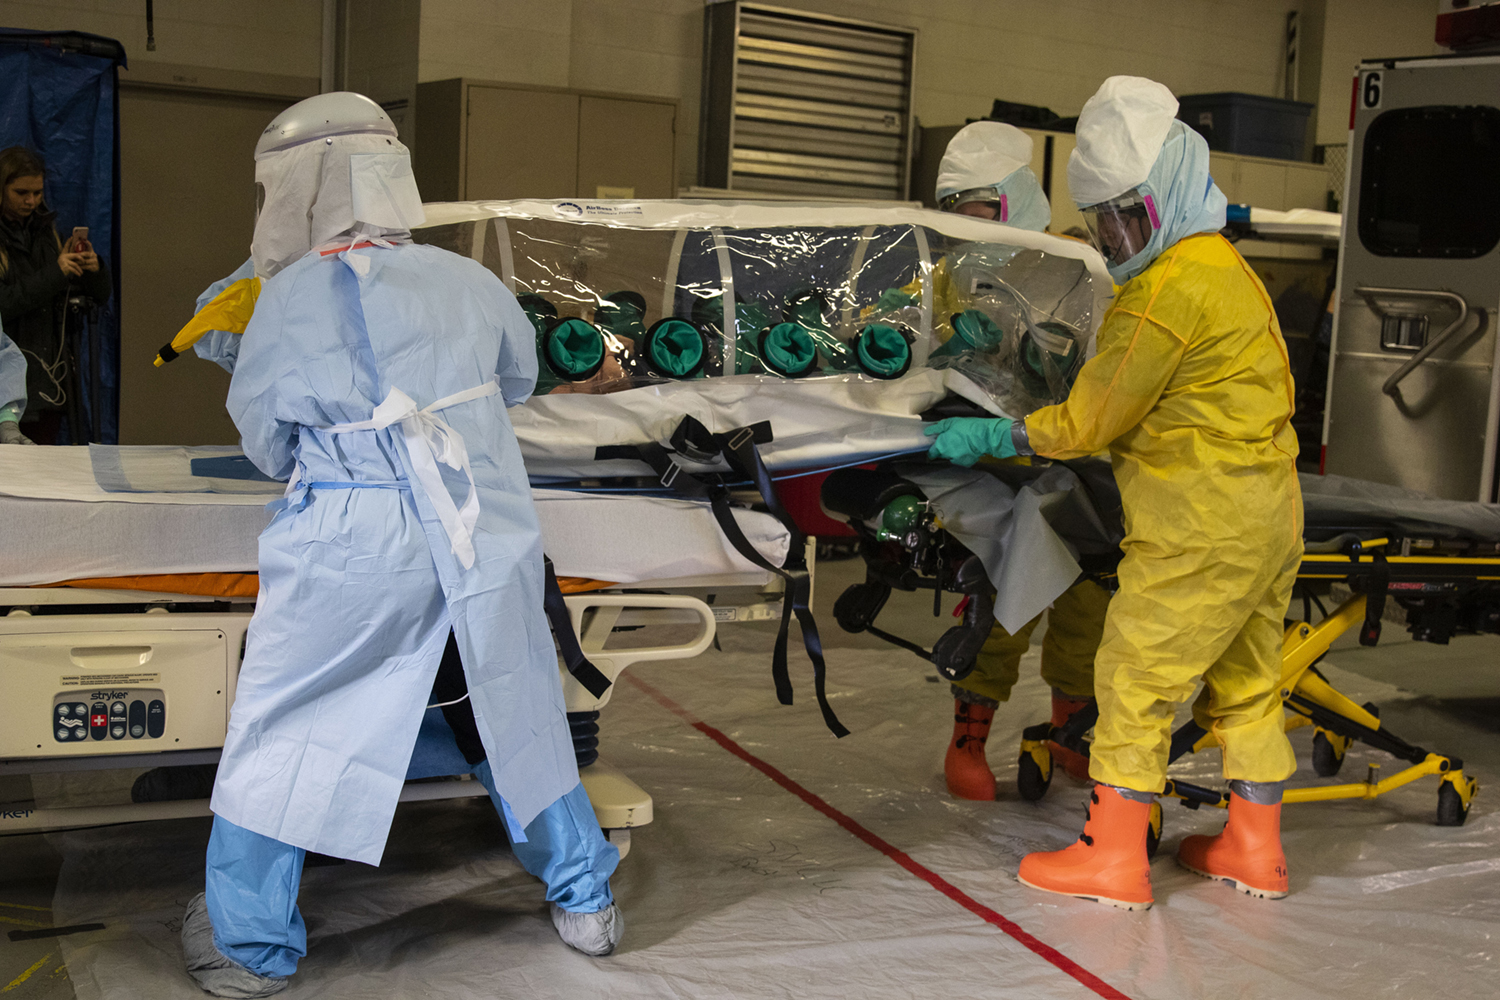 UI Hospitals and Clinics holds an emergency response exercise at the UIHC Ambulance Bay on Tuesday, Dec. 11, 2018. The goal of the response exercise was to prepare for use of the biocontainment unit.